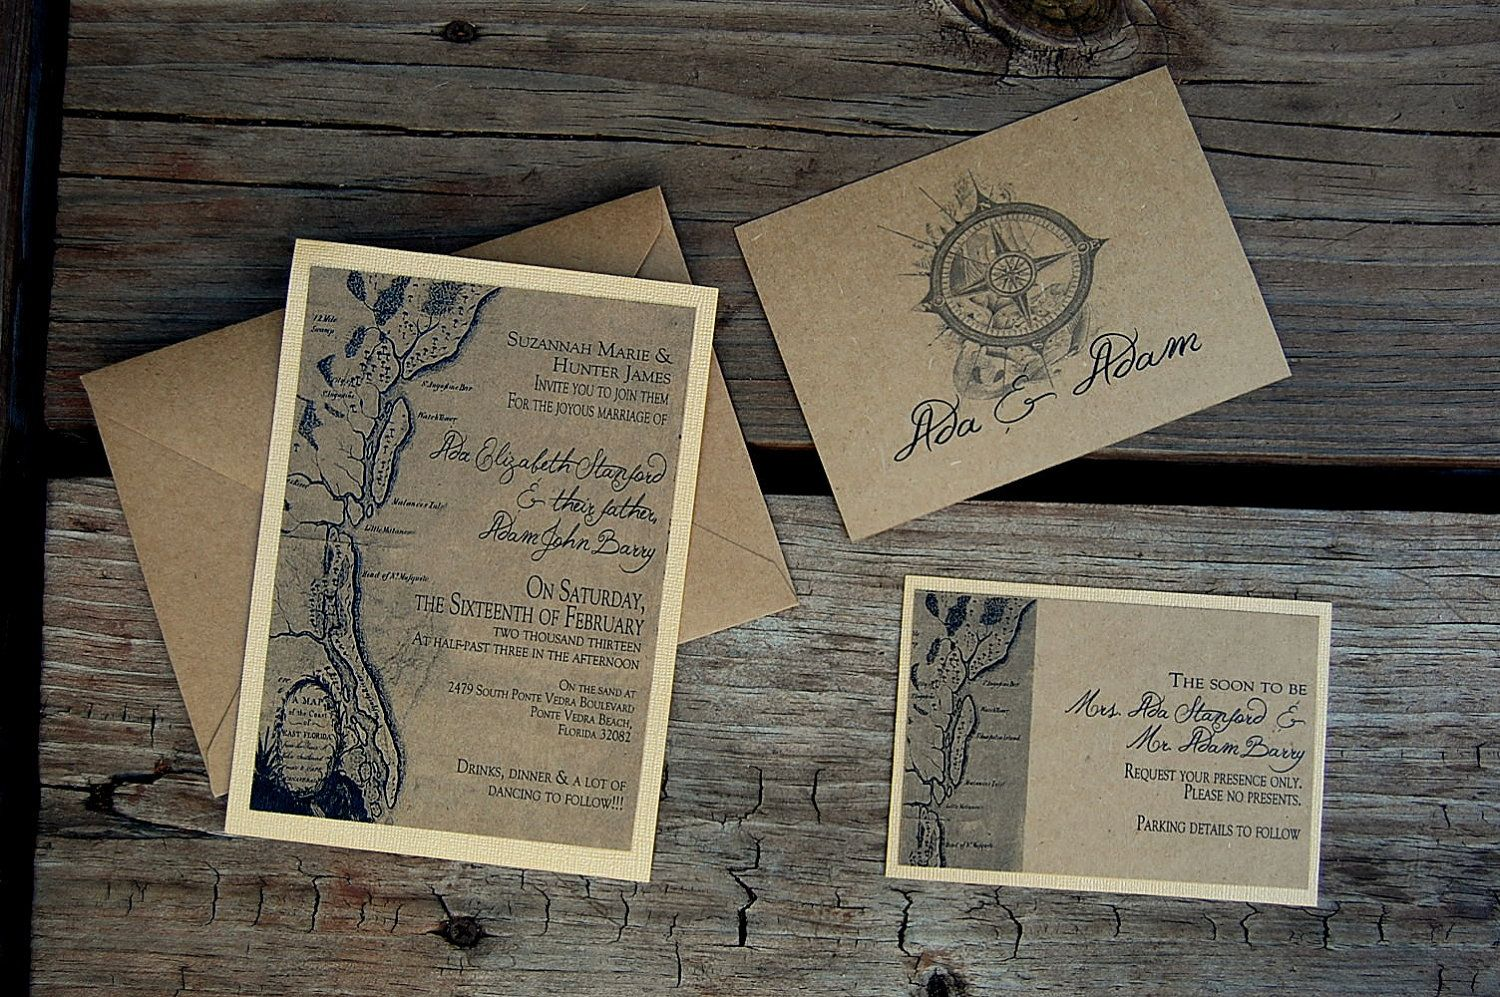 Customized vintage old world map wedding invitations for any customized vintage old world map wedding invitations for any location 300 via etsy gumiabroncs Gallery